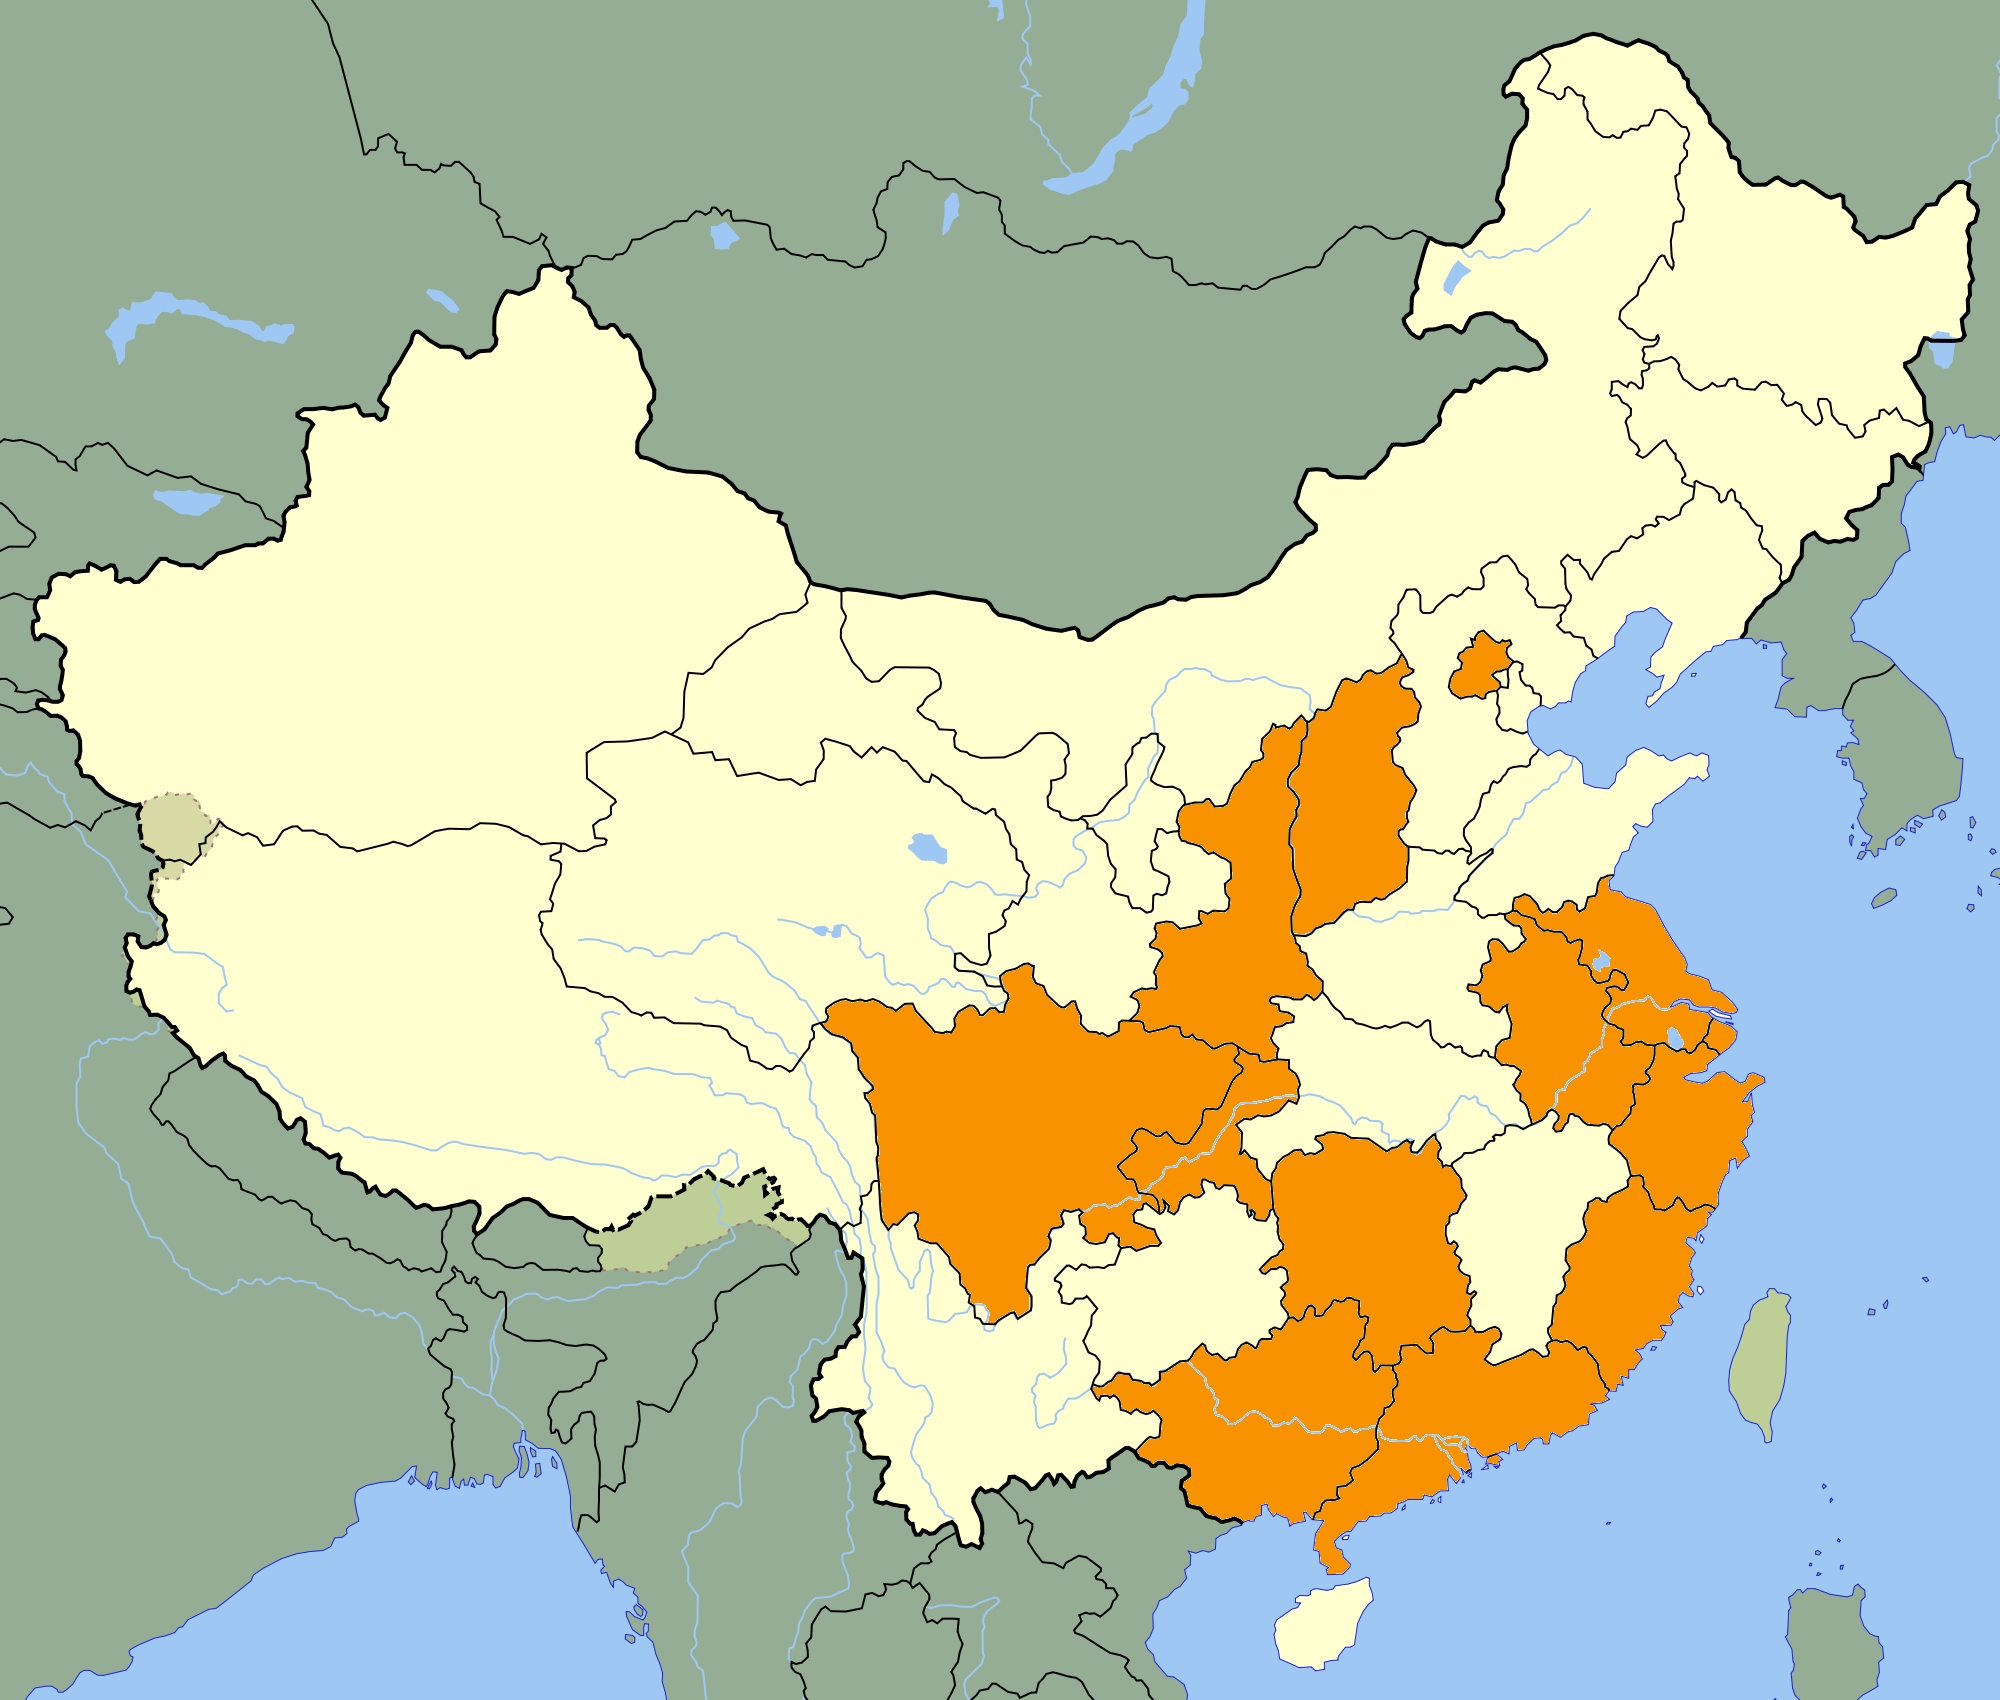 Visited Provinces and Cities on Mainland China